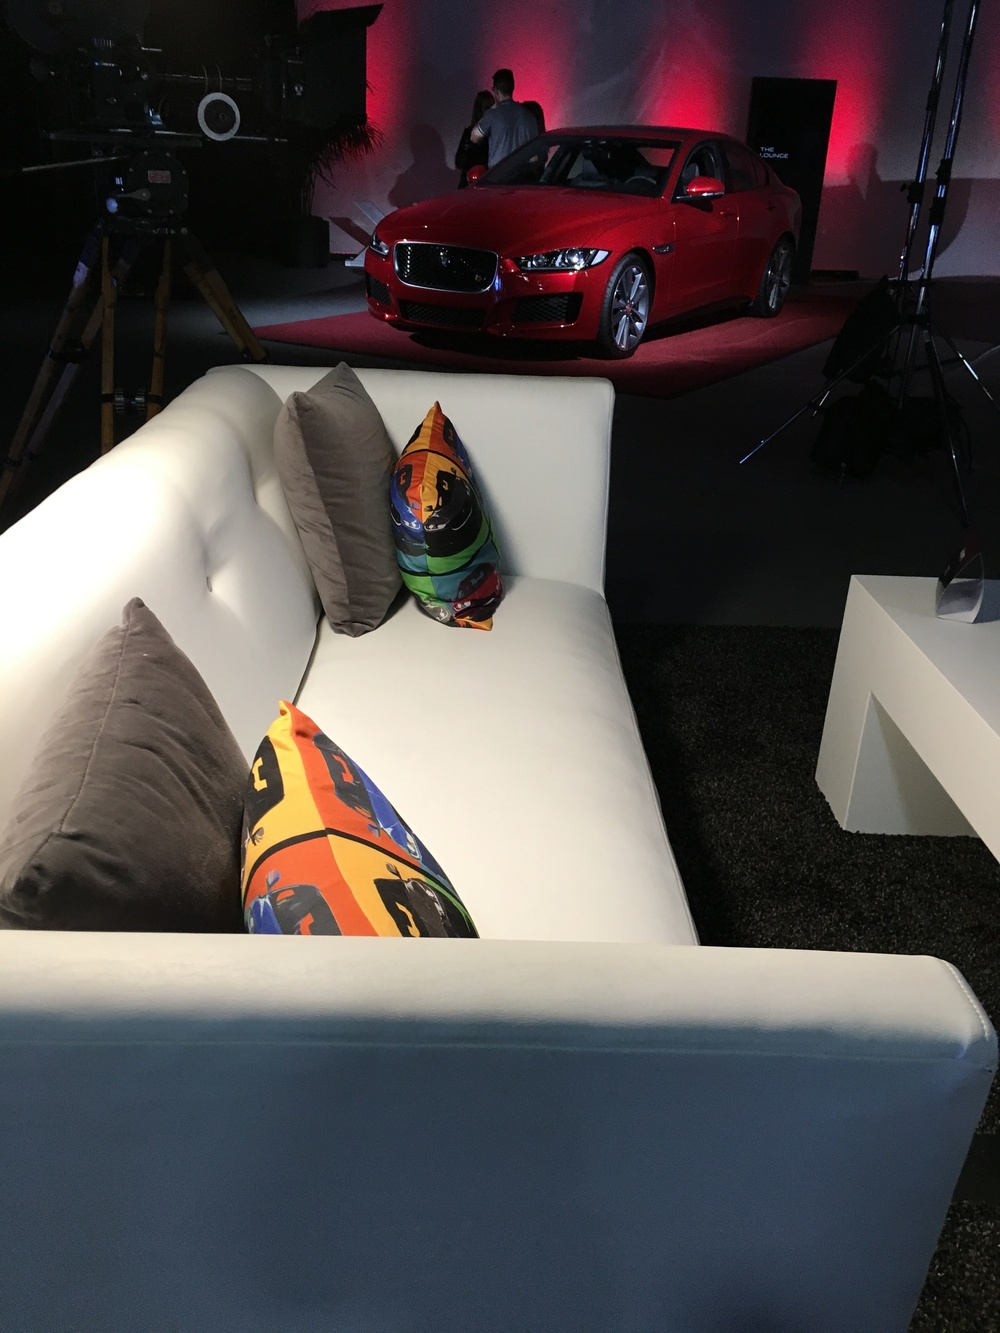 Chillax at the lounge with the new Jaguar XE.